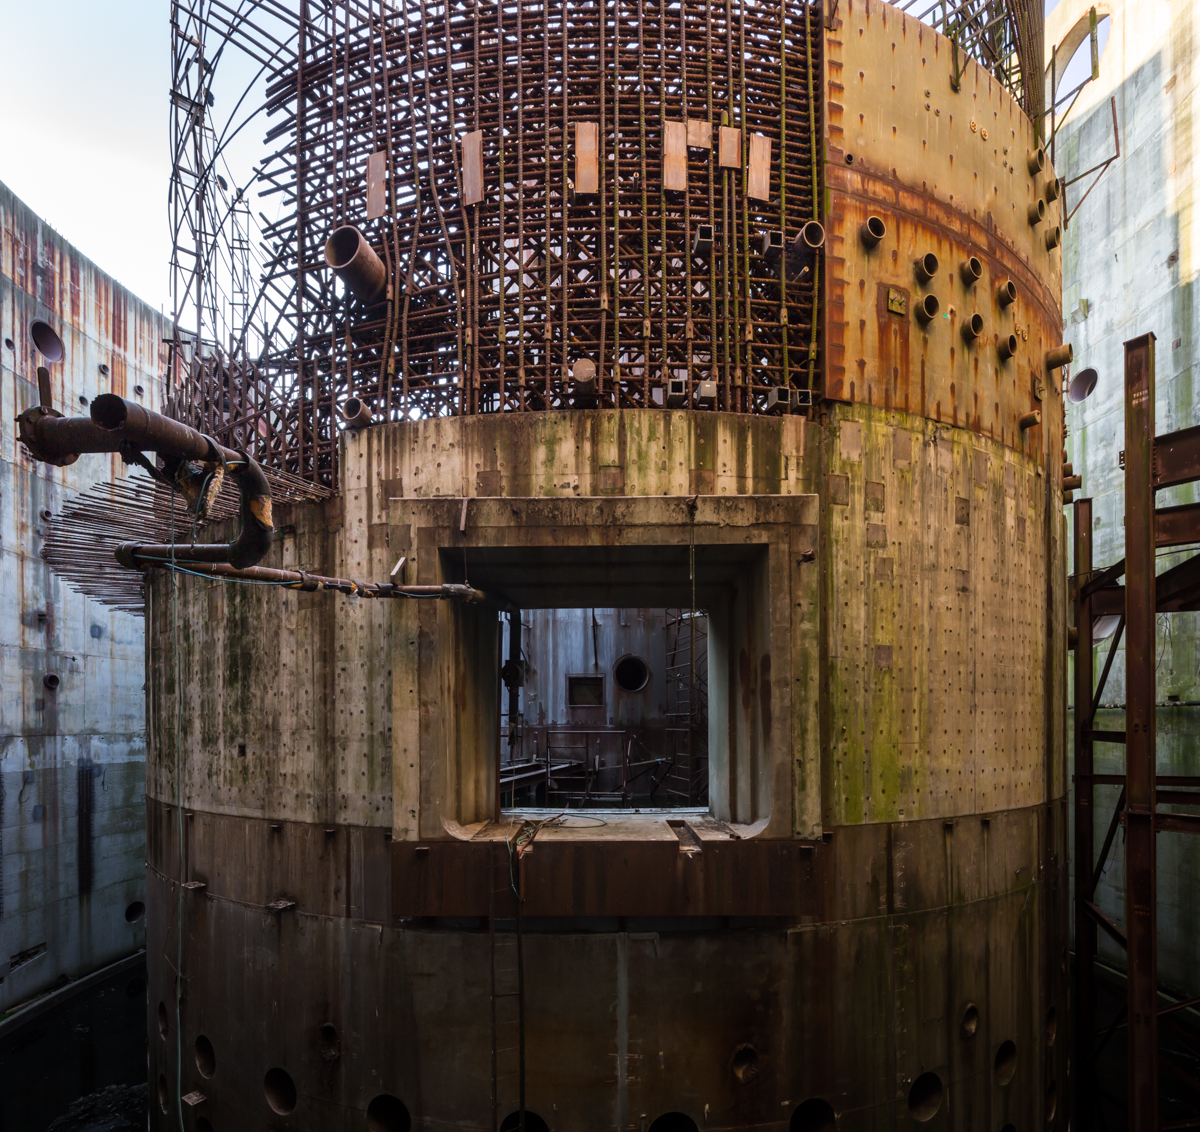 Reactor Building    |    Hartsville Nuclear Power Plant    |    Tennessee